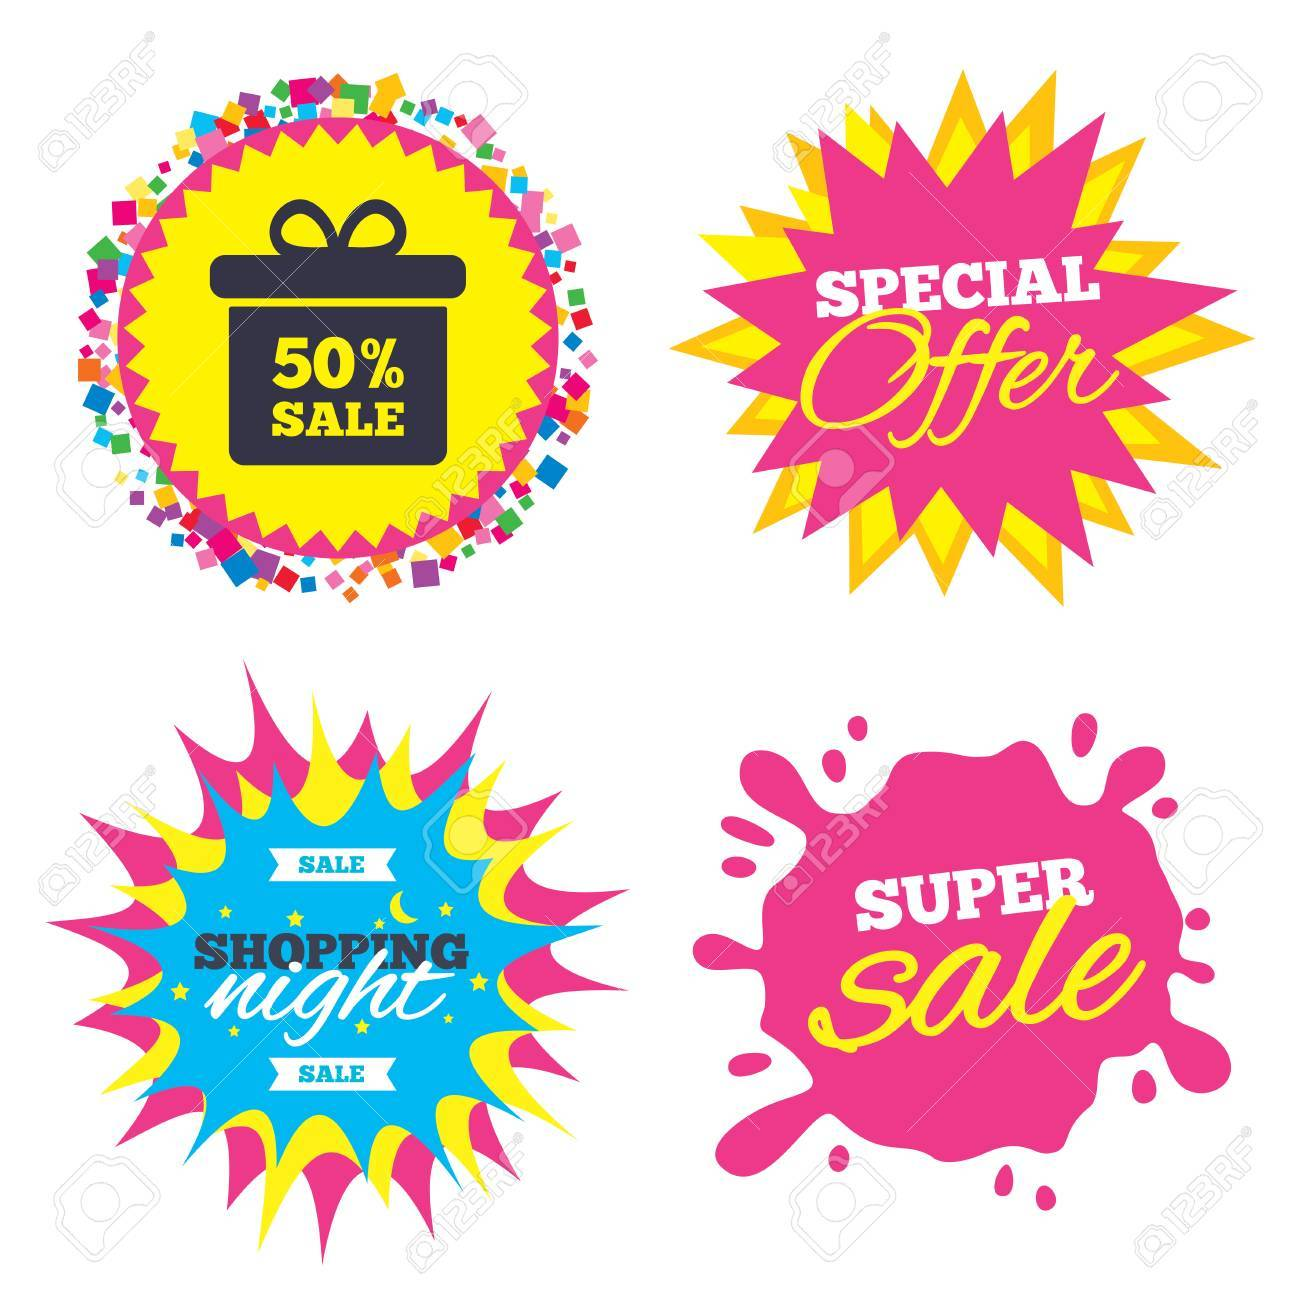 Sale Splash Banner Special Offer Star 50 Sale Gift Box Tag Royalty Free Cliparts Vectors And Stock Illustration Image 76311979